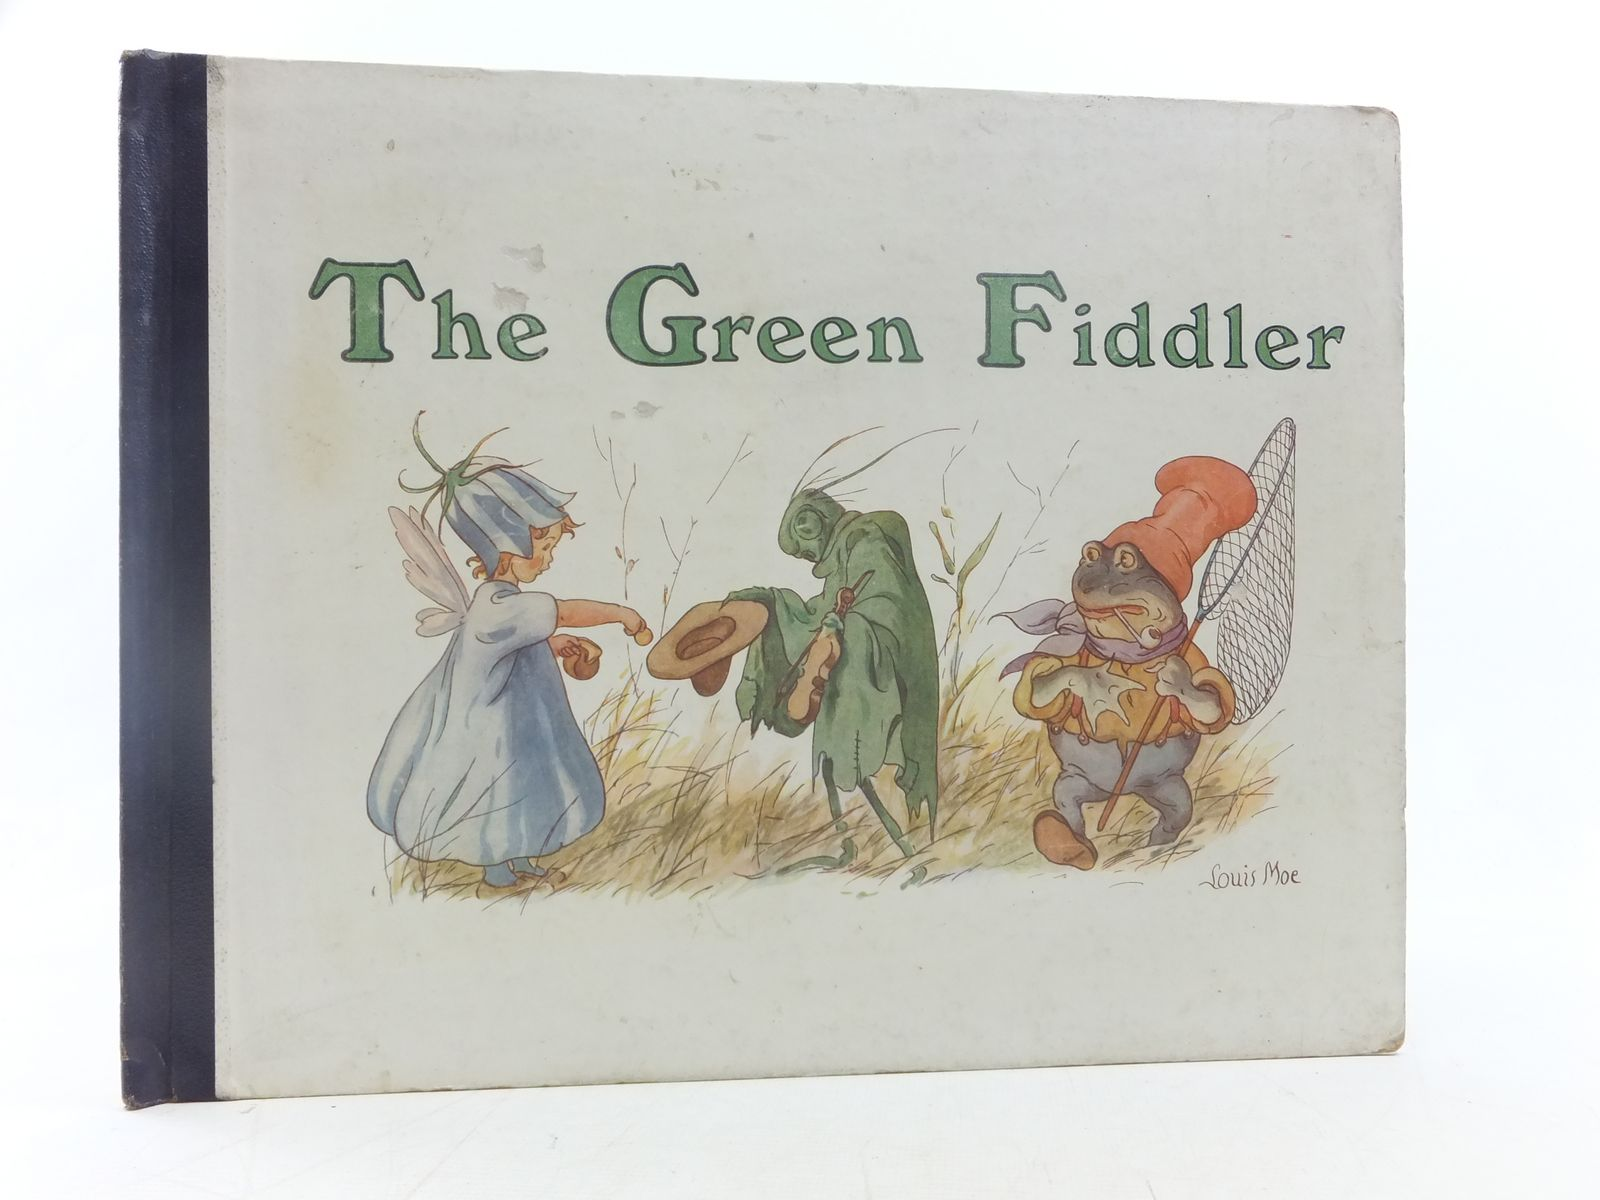 Photo of THE GREEN FIDDLER written by Kalkar, George illustrated by Moe, Louis published by Thomas De La Rue & Co. Ltd. (STOCK CODE: 2117988)  for sale by Stella & Rose's Books